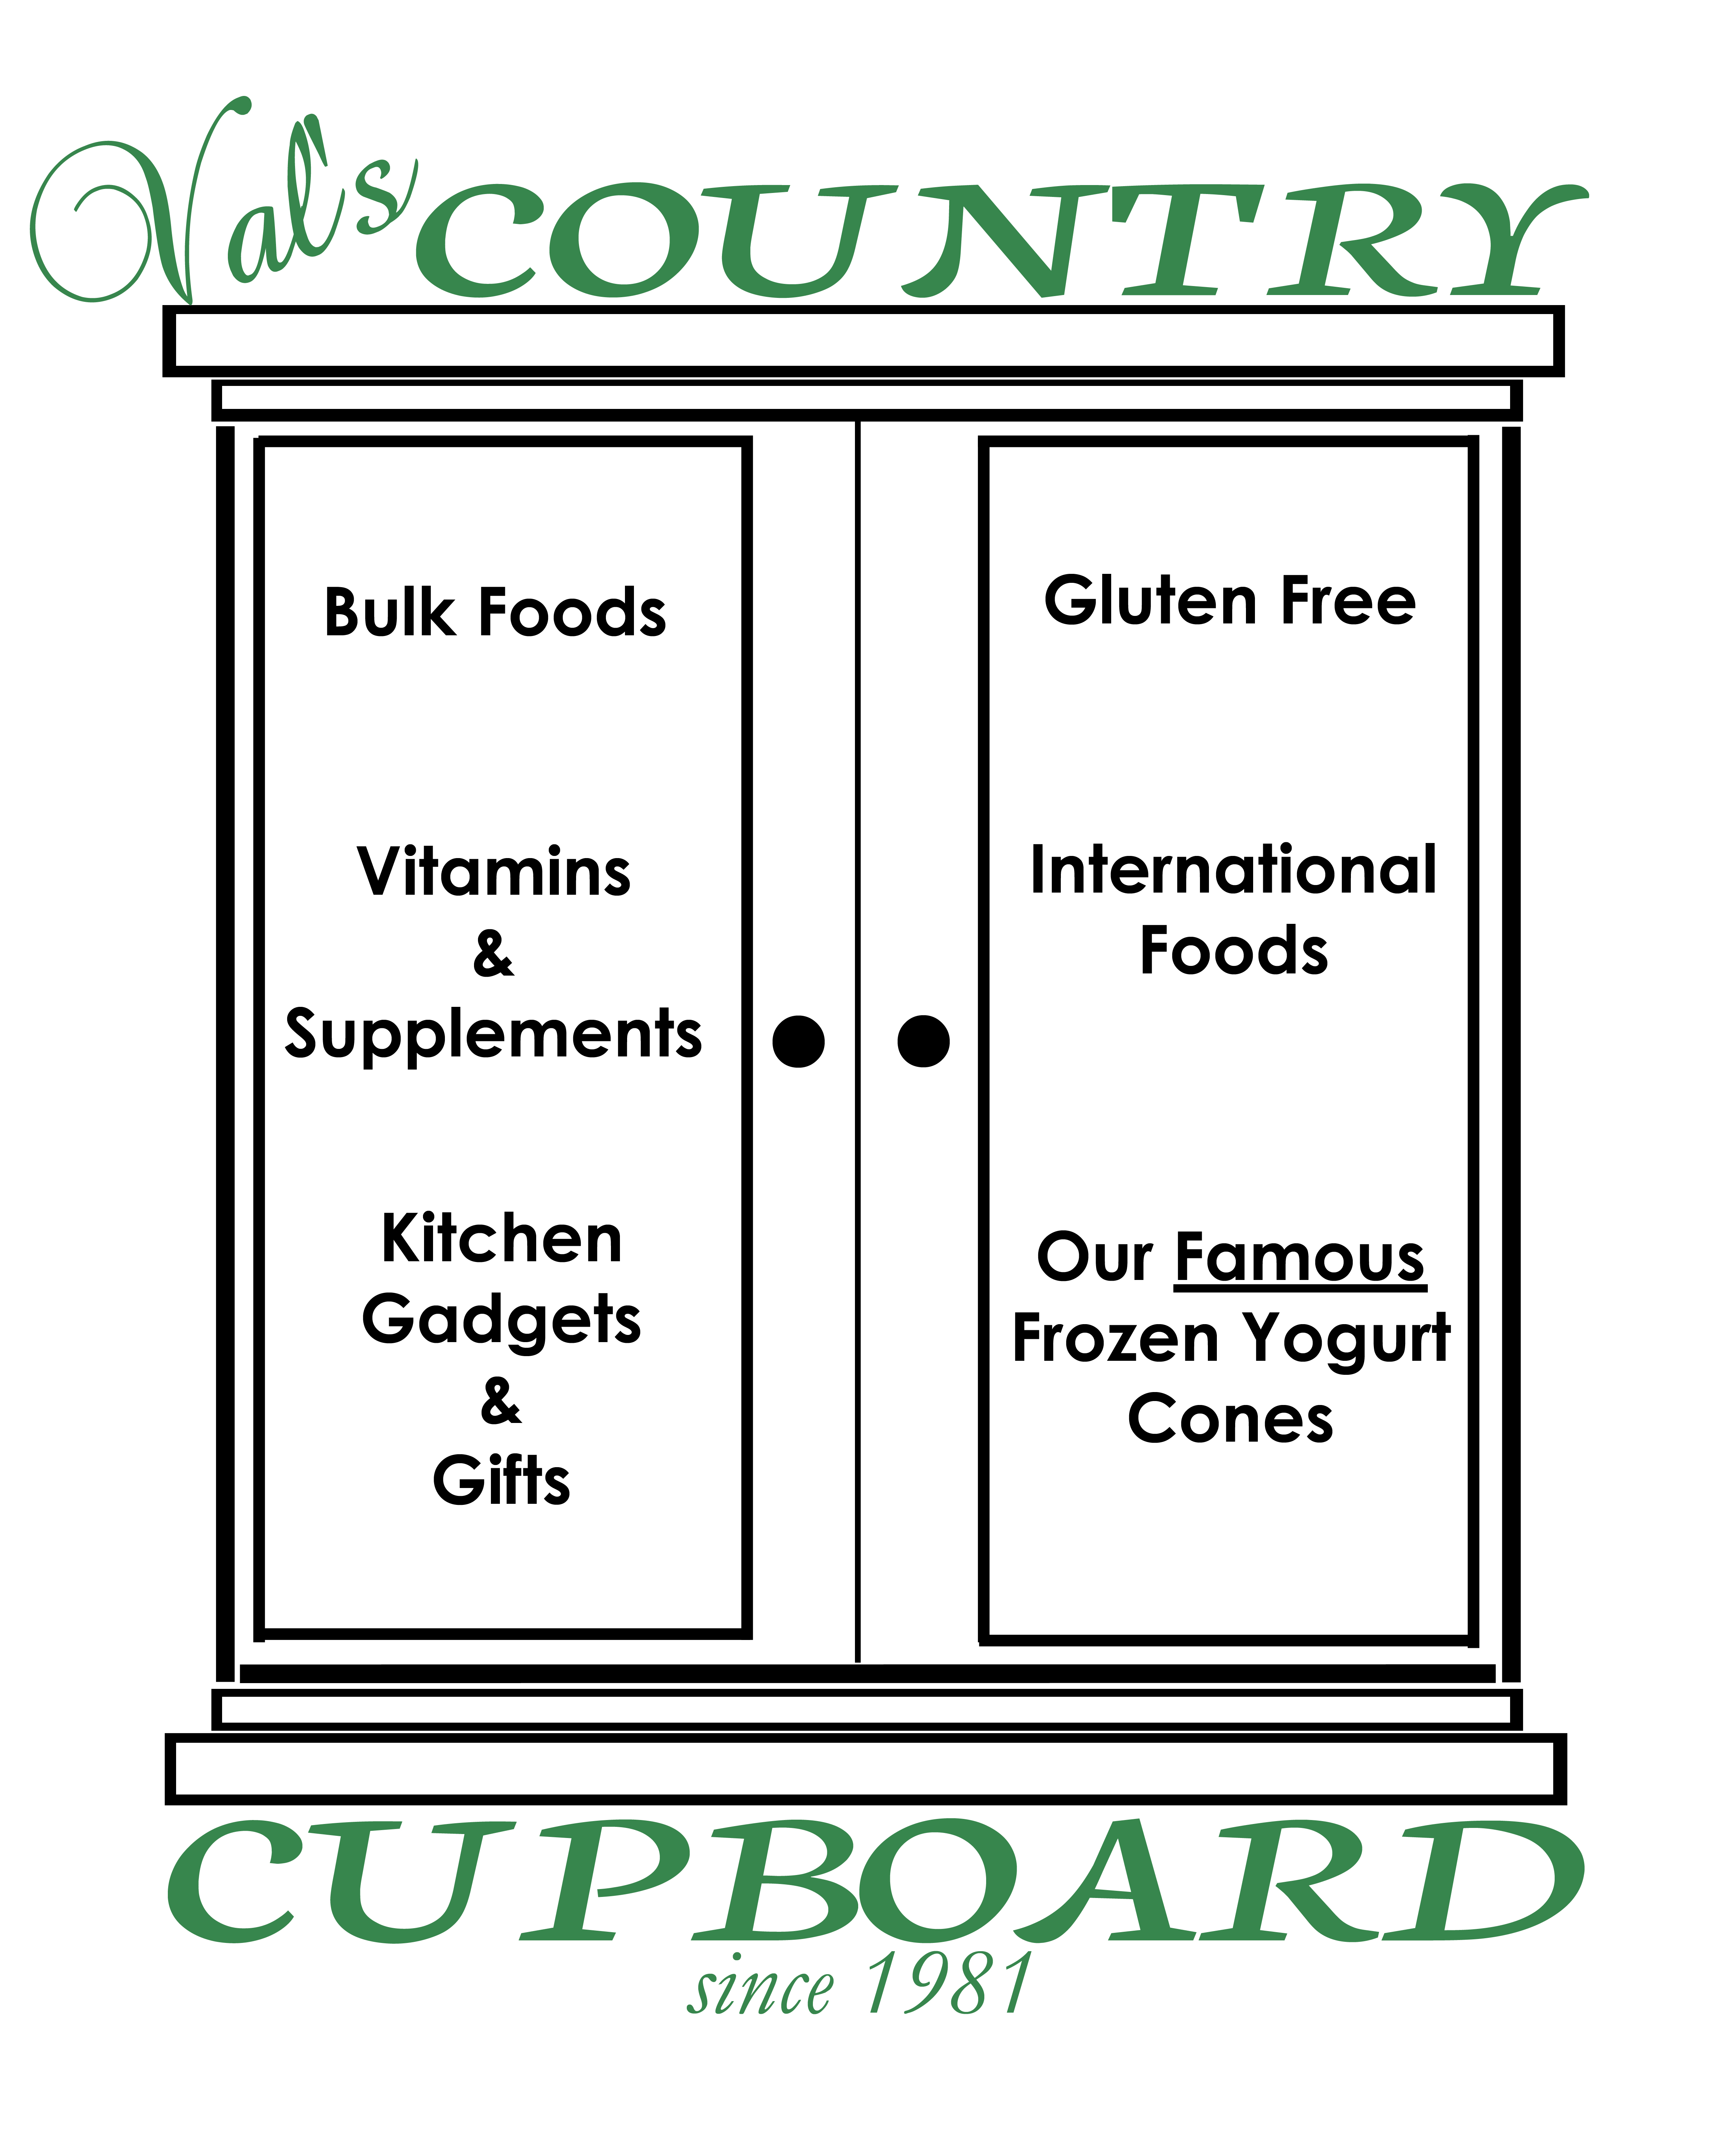 Val's Country Cupboard